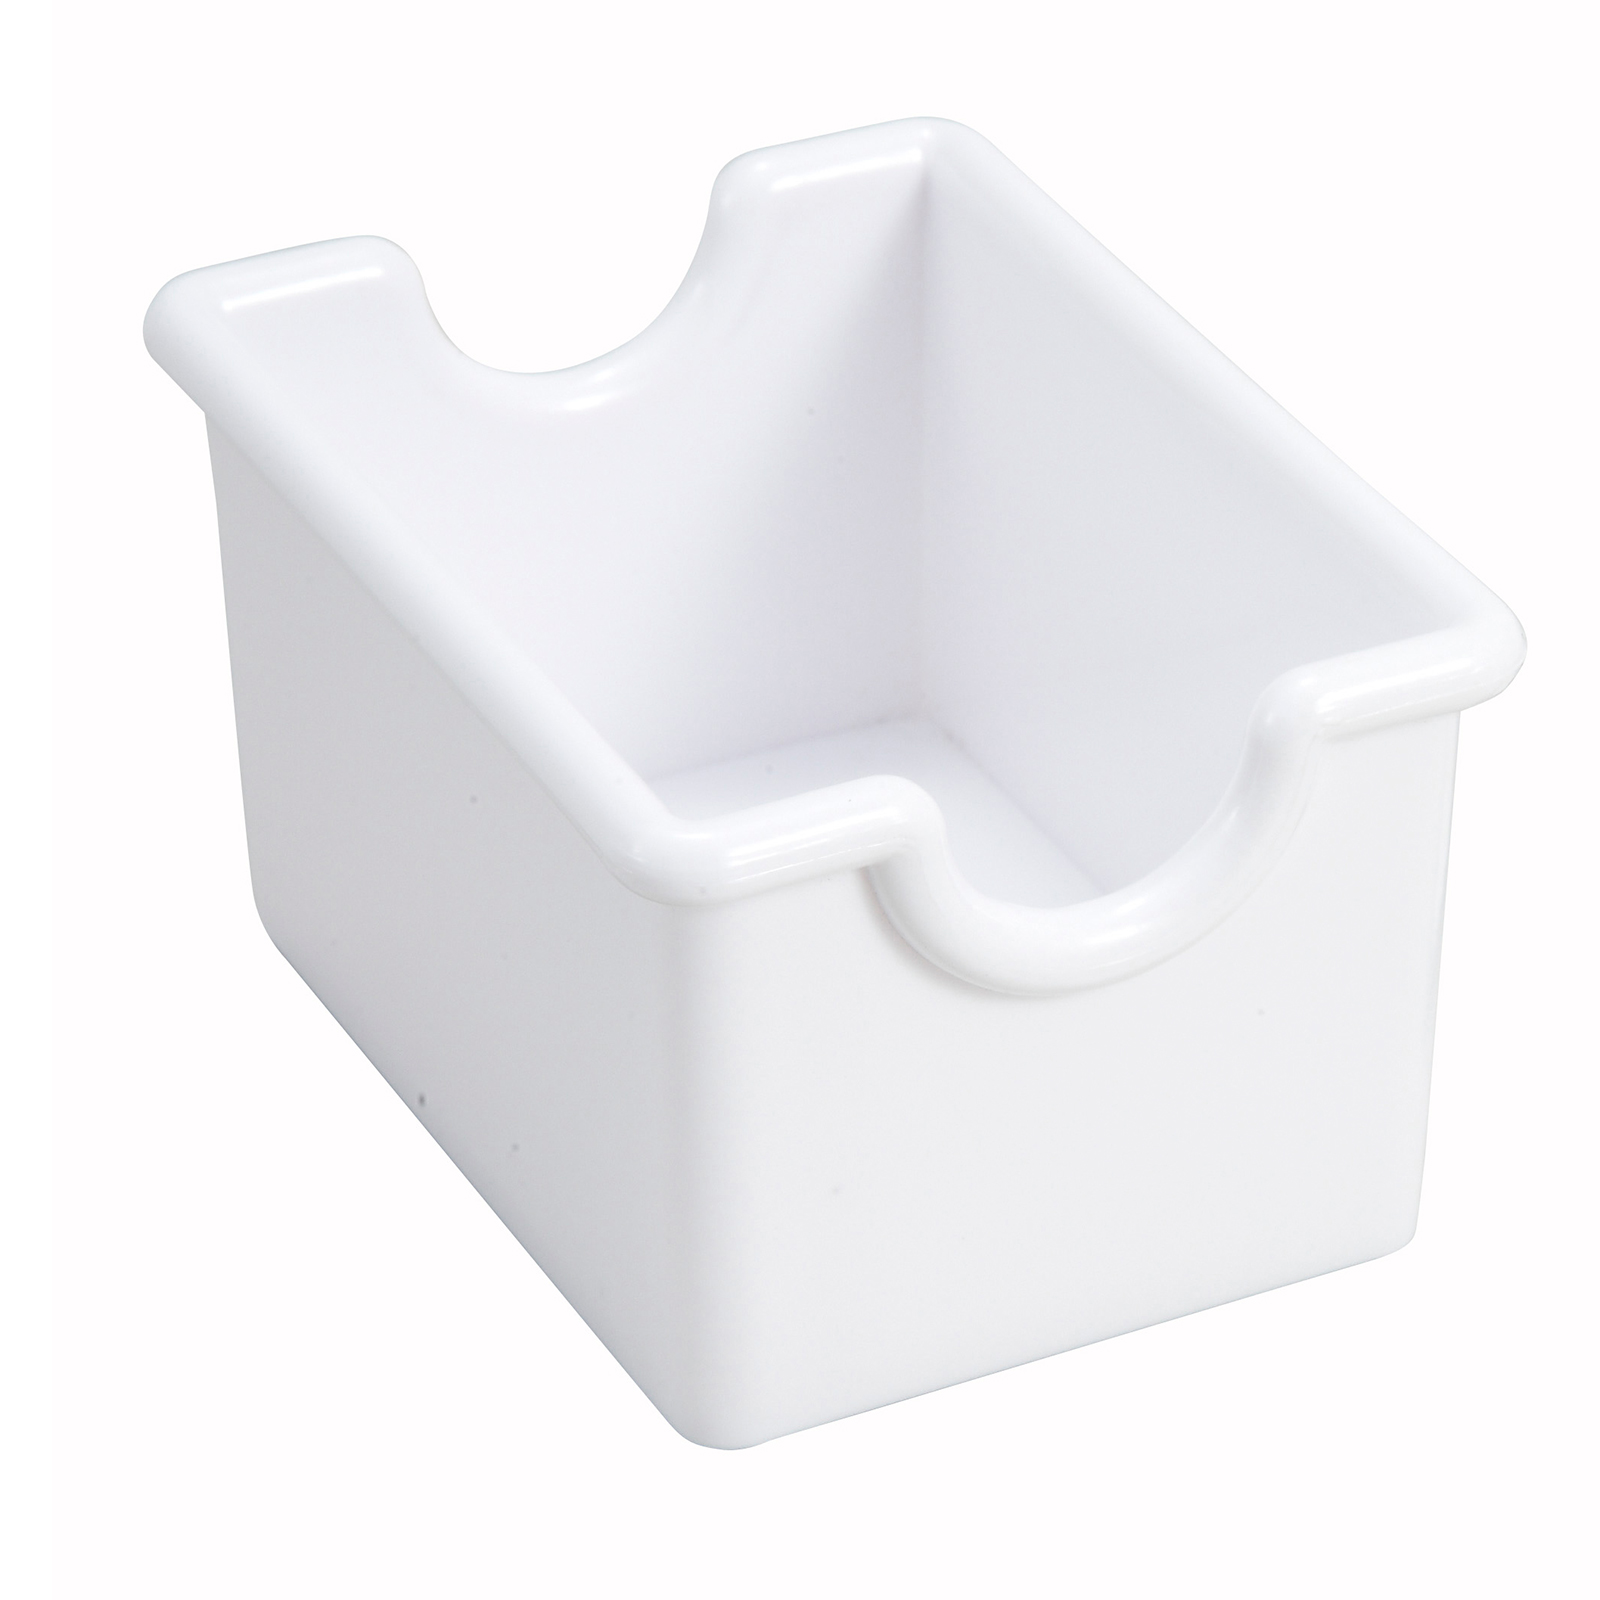 Winco PPH-1W sugar packet holder / caddy